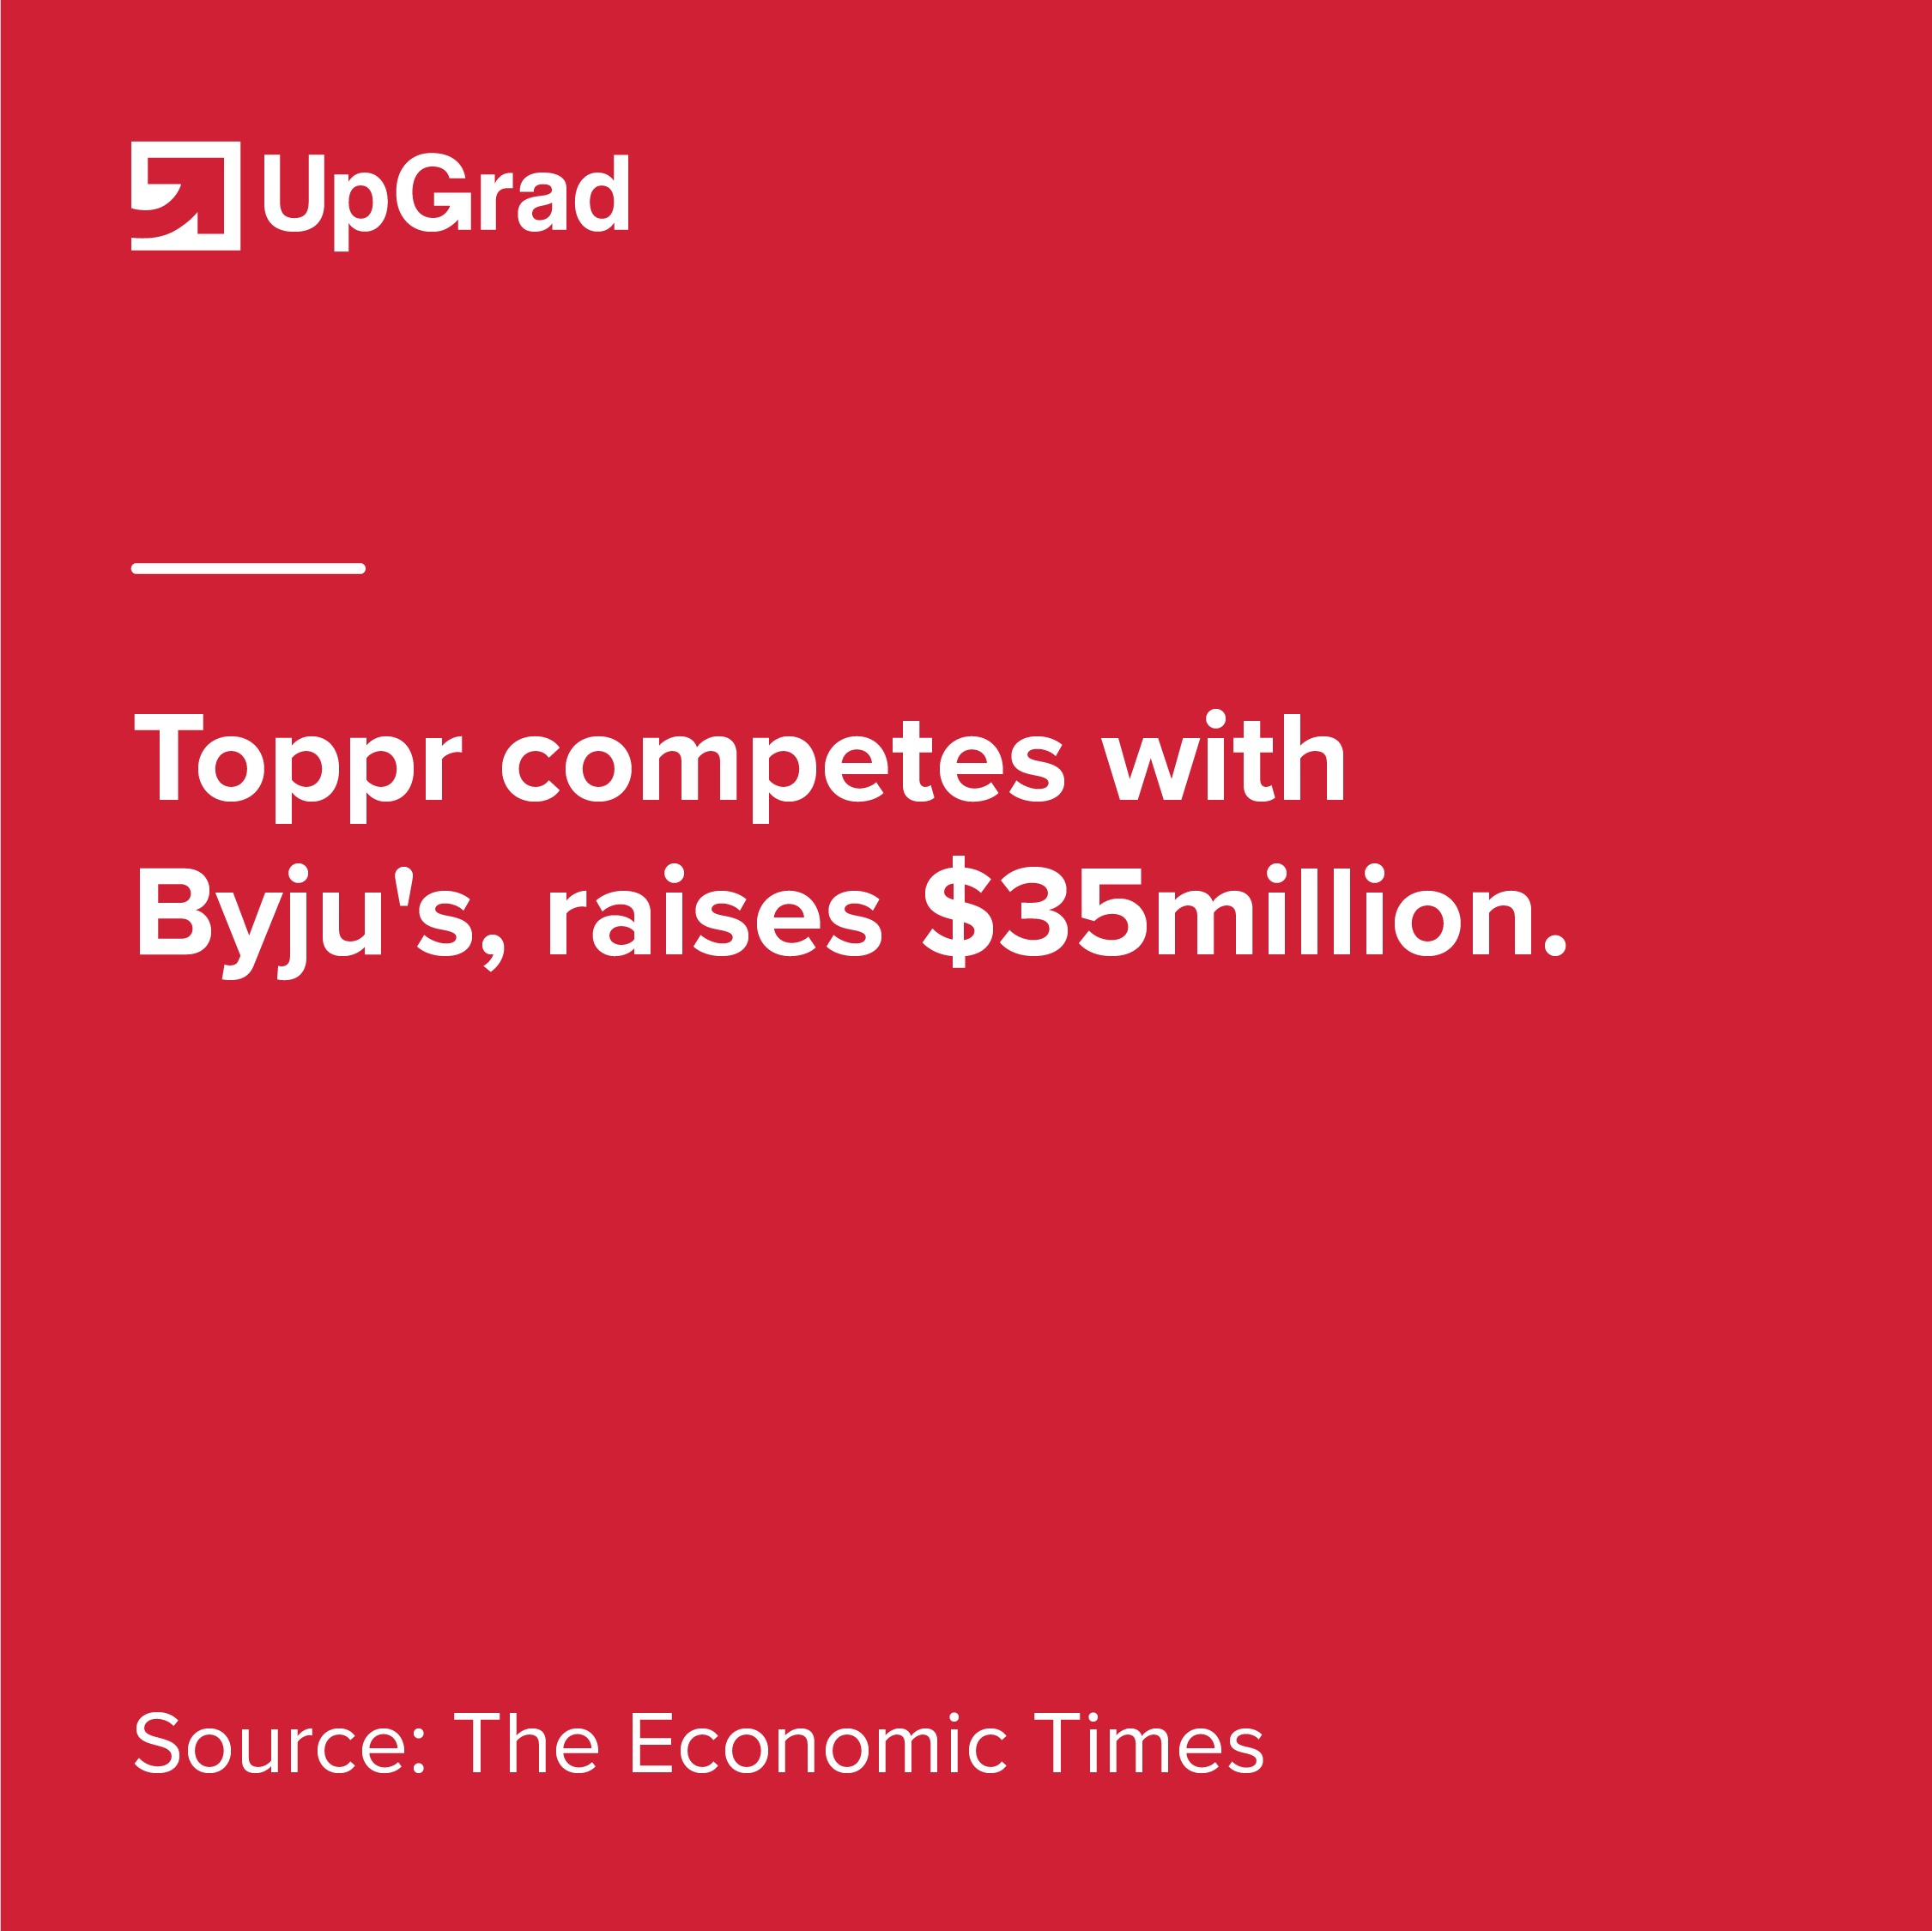 Toppr competes with Byju's